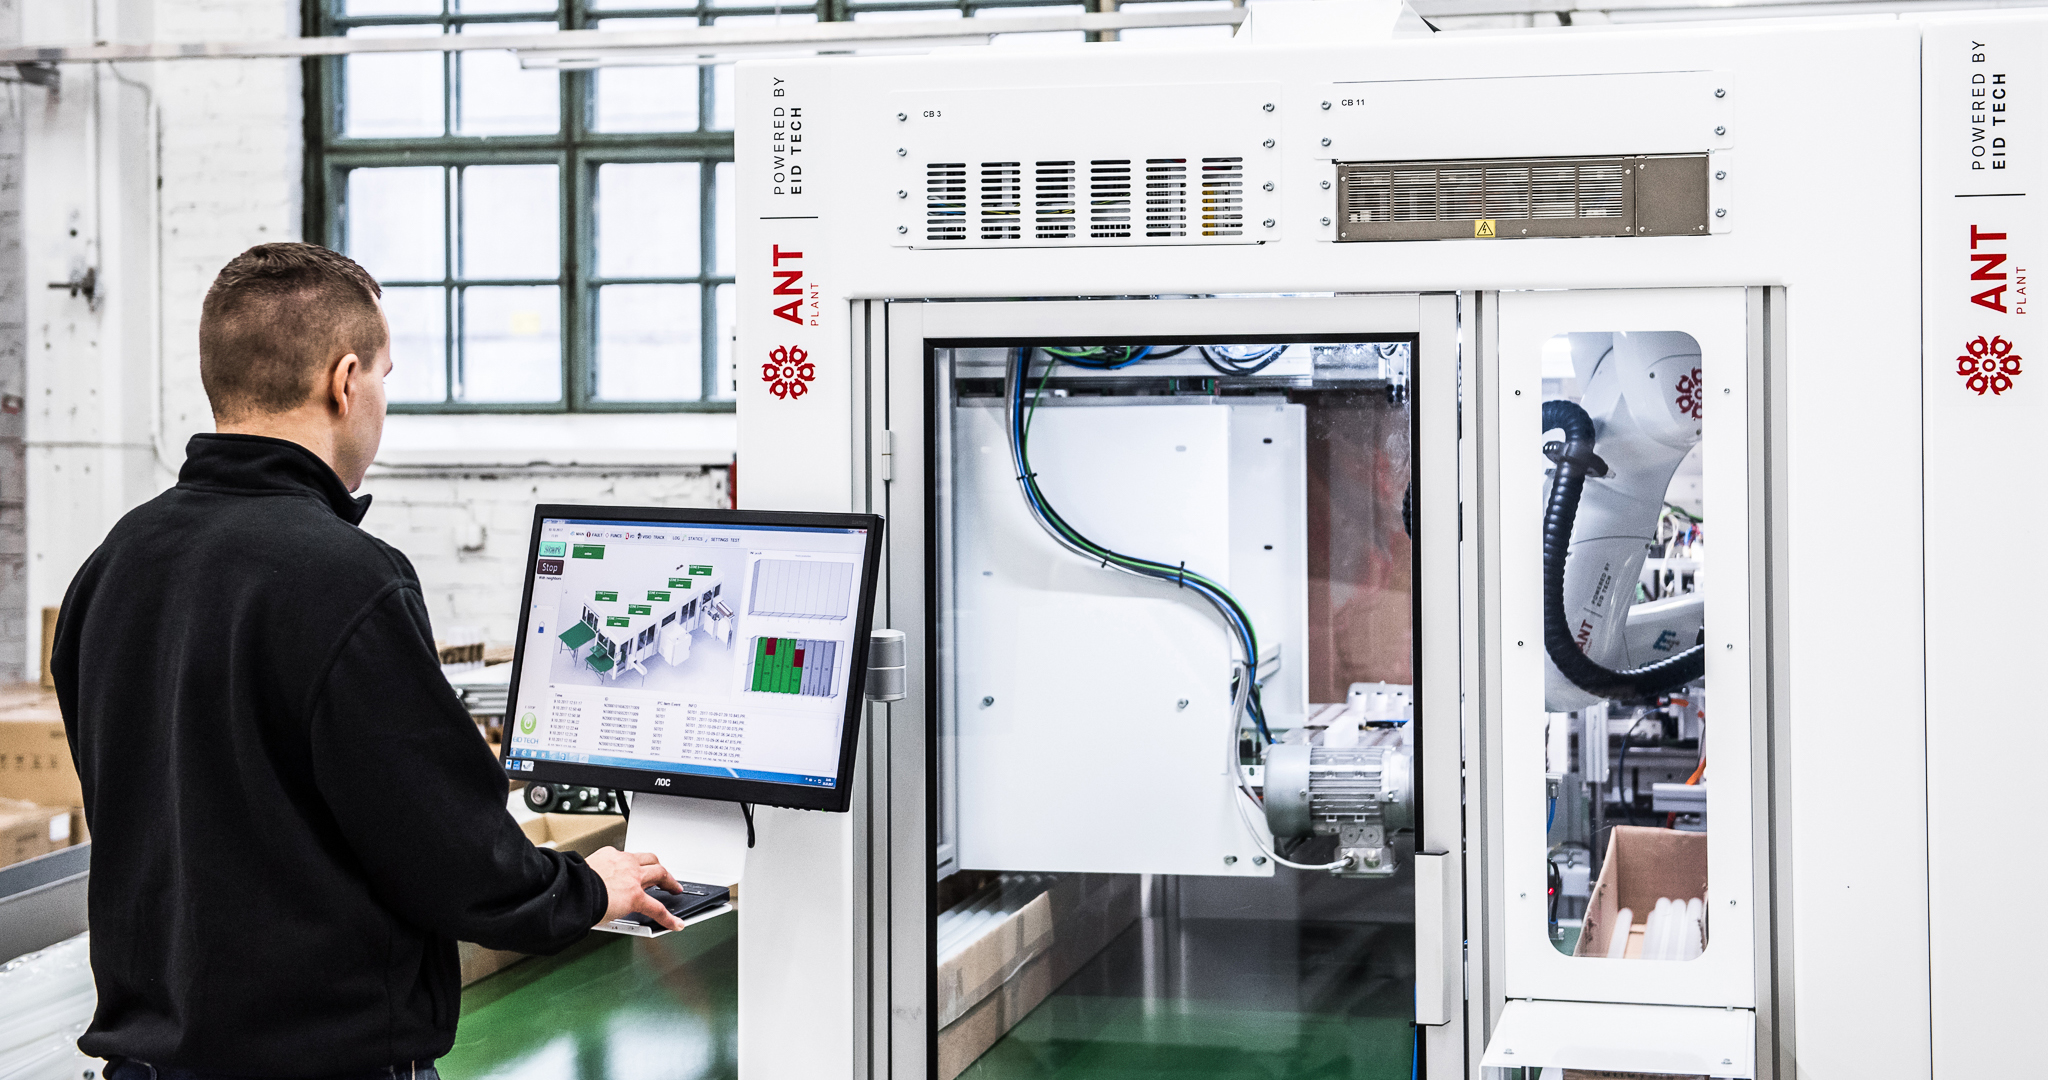 The robotized microfactory is key to bringing jobs back from overseas and boosting productivity